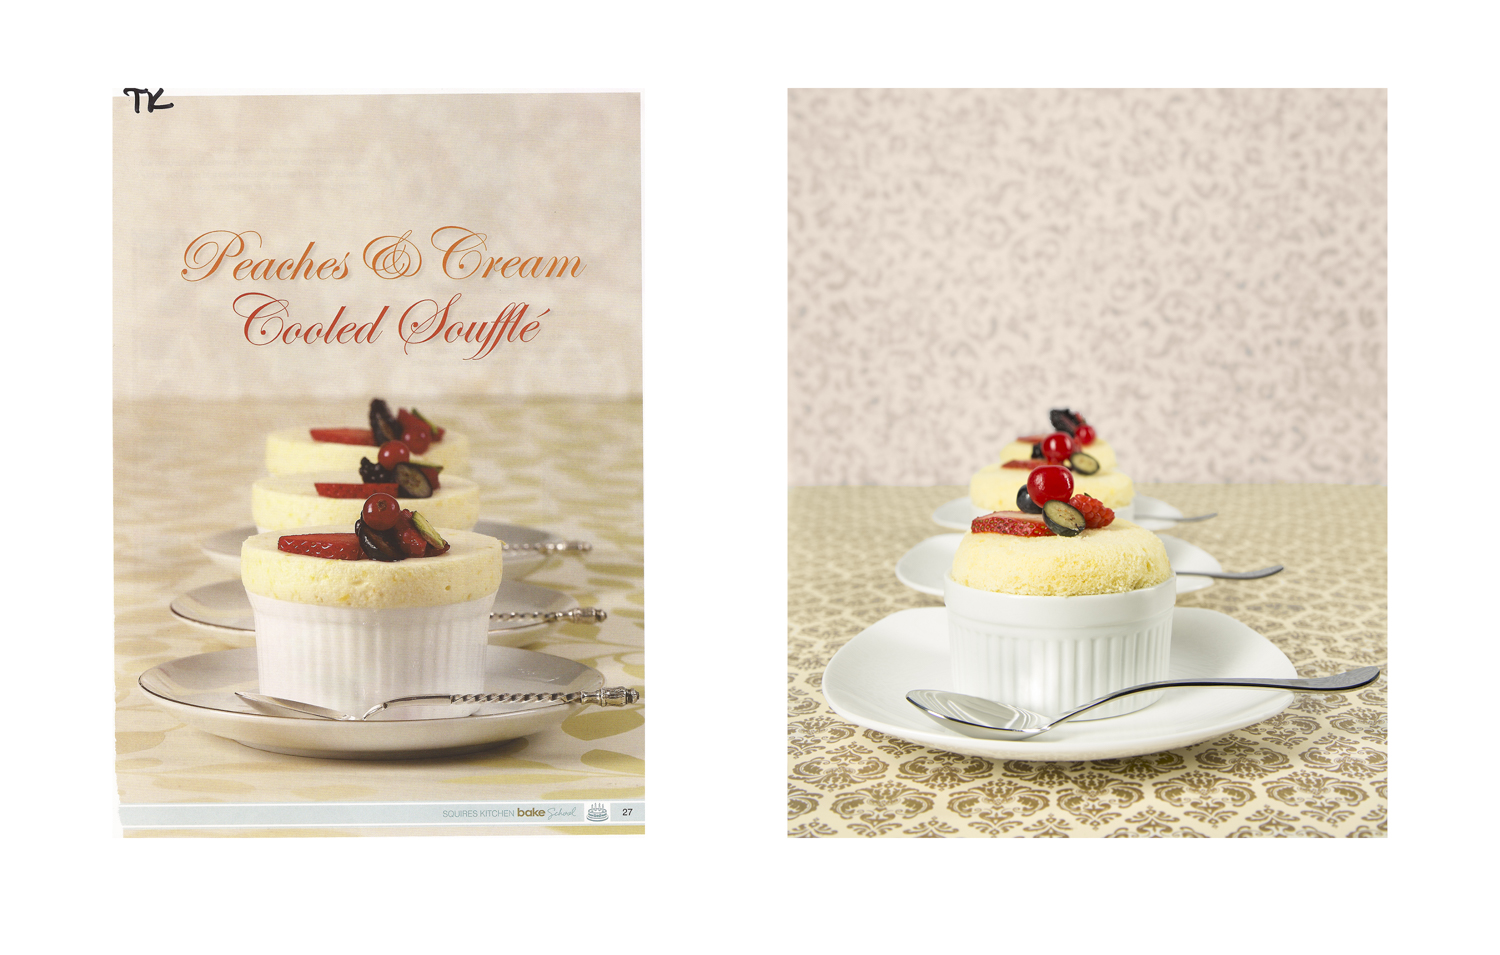 Advertisement (Left): Squires Kitchen Bake School | My Photograph (Right)